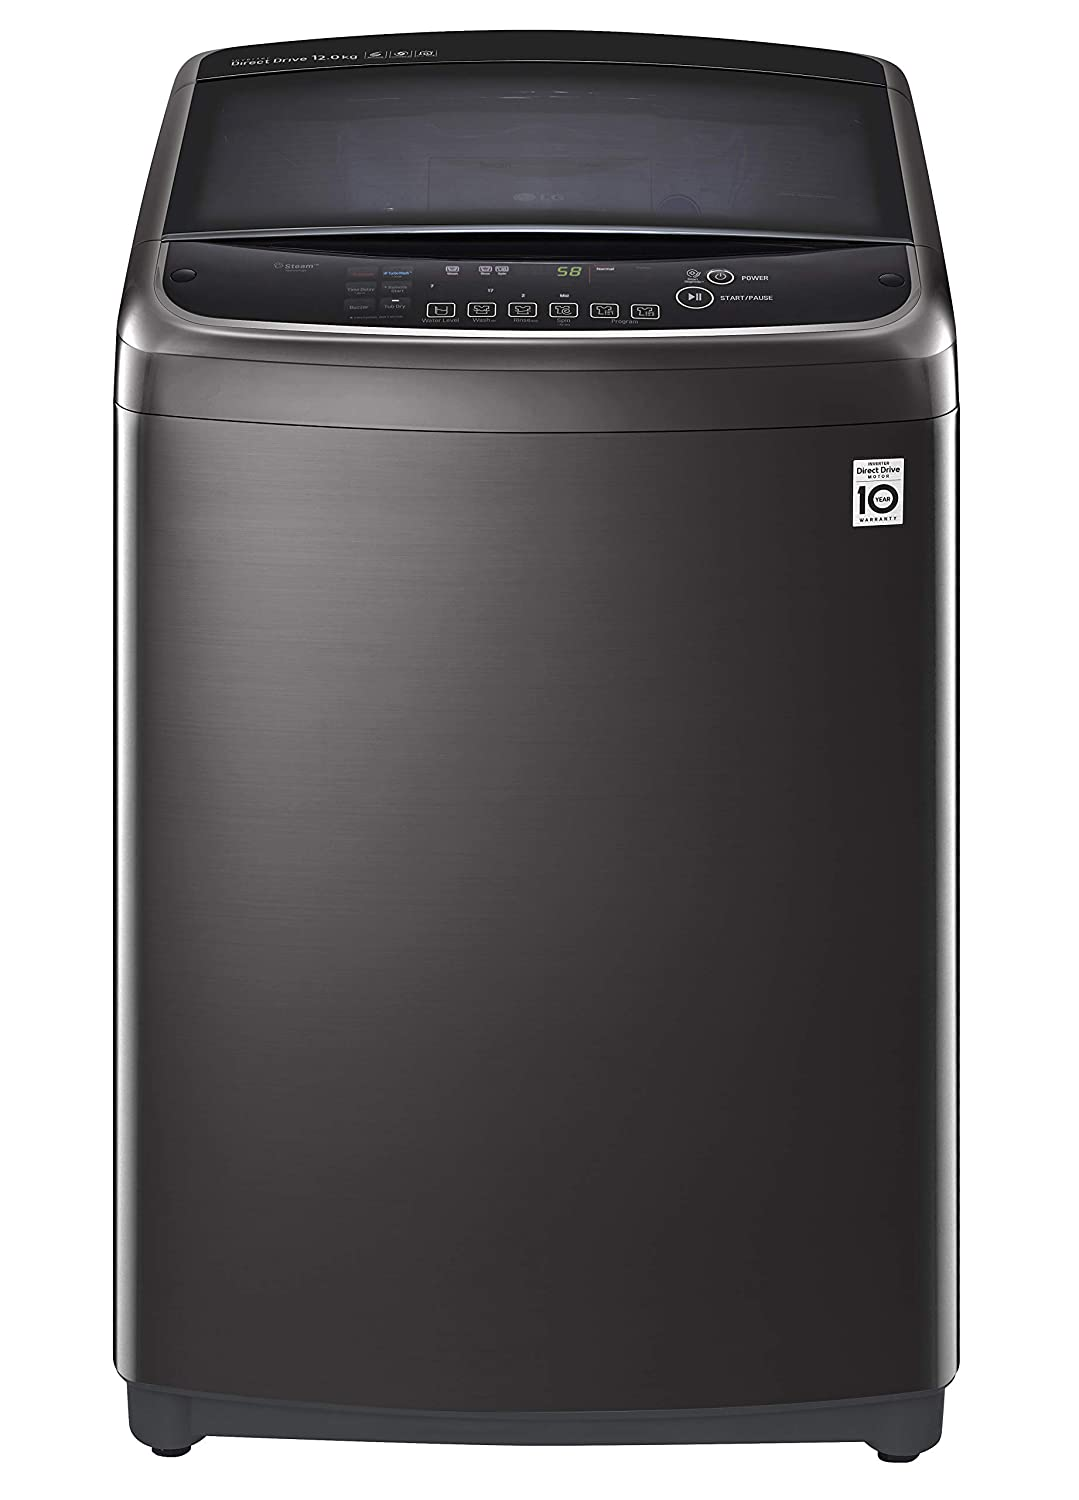 LG 12.0 Kg Inverter Wi-Fi Fully-Automatic Top Loading Washing Machine (THD12STB, Black Stainless Steel)